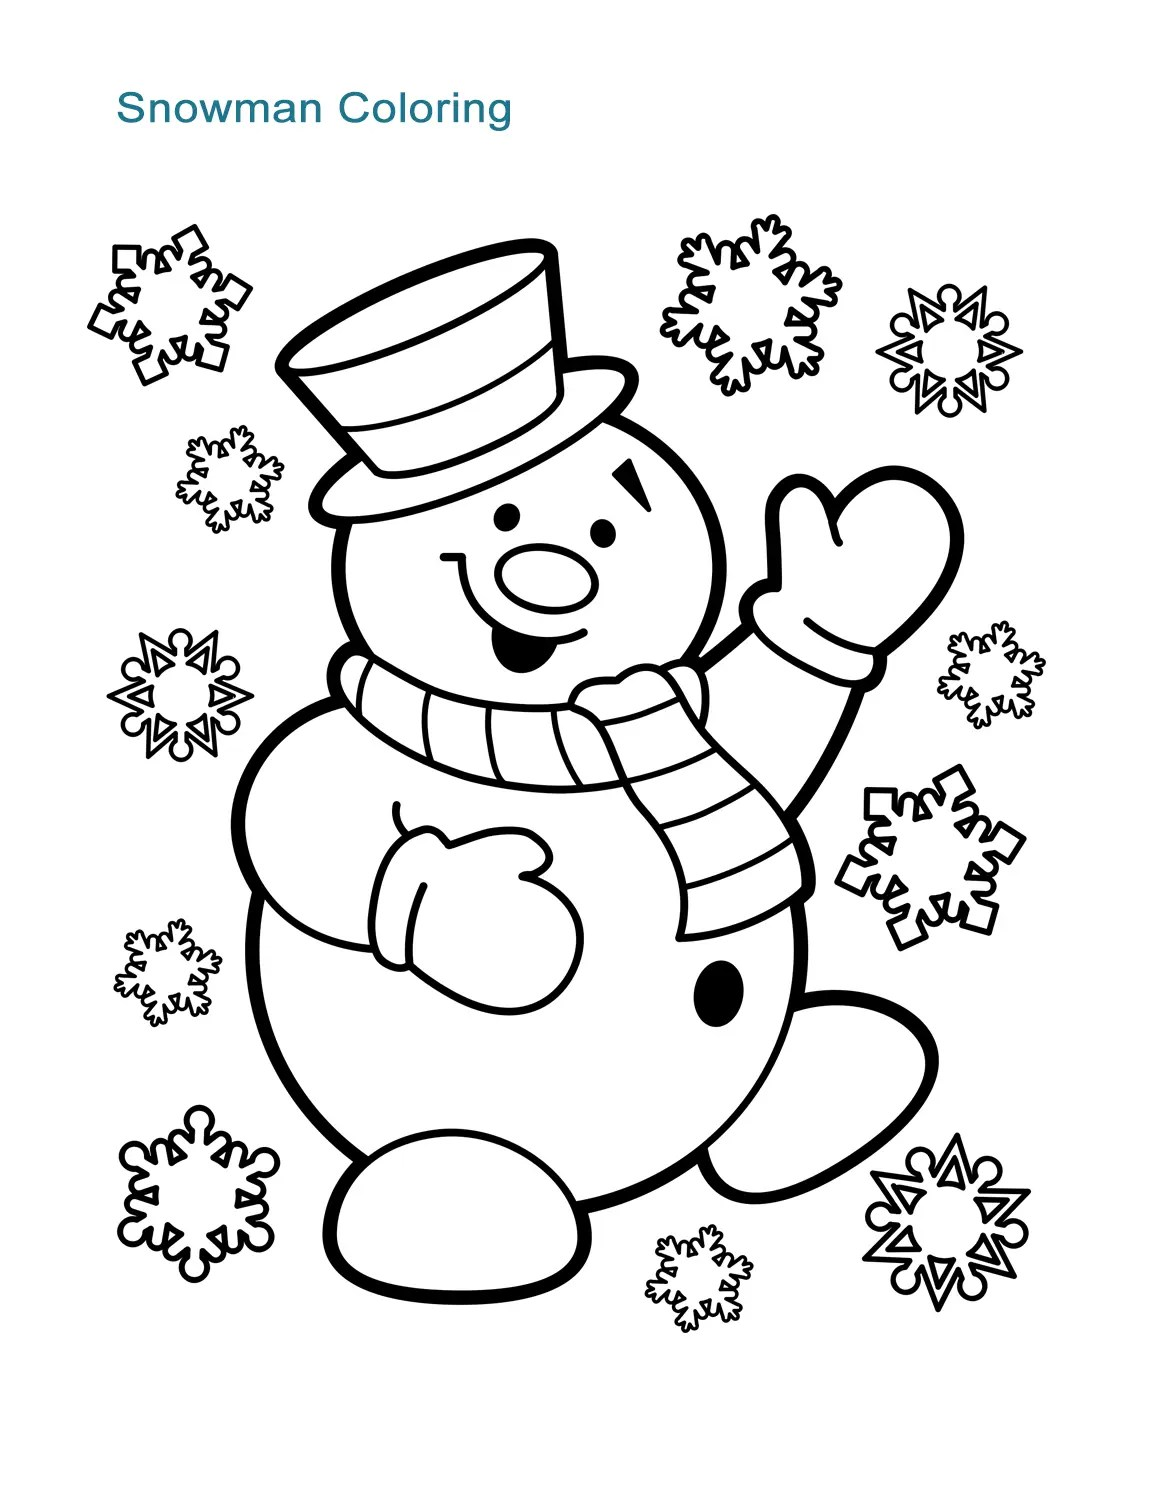 10 Christmas Coloring Worksheets For All Ages